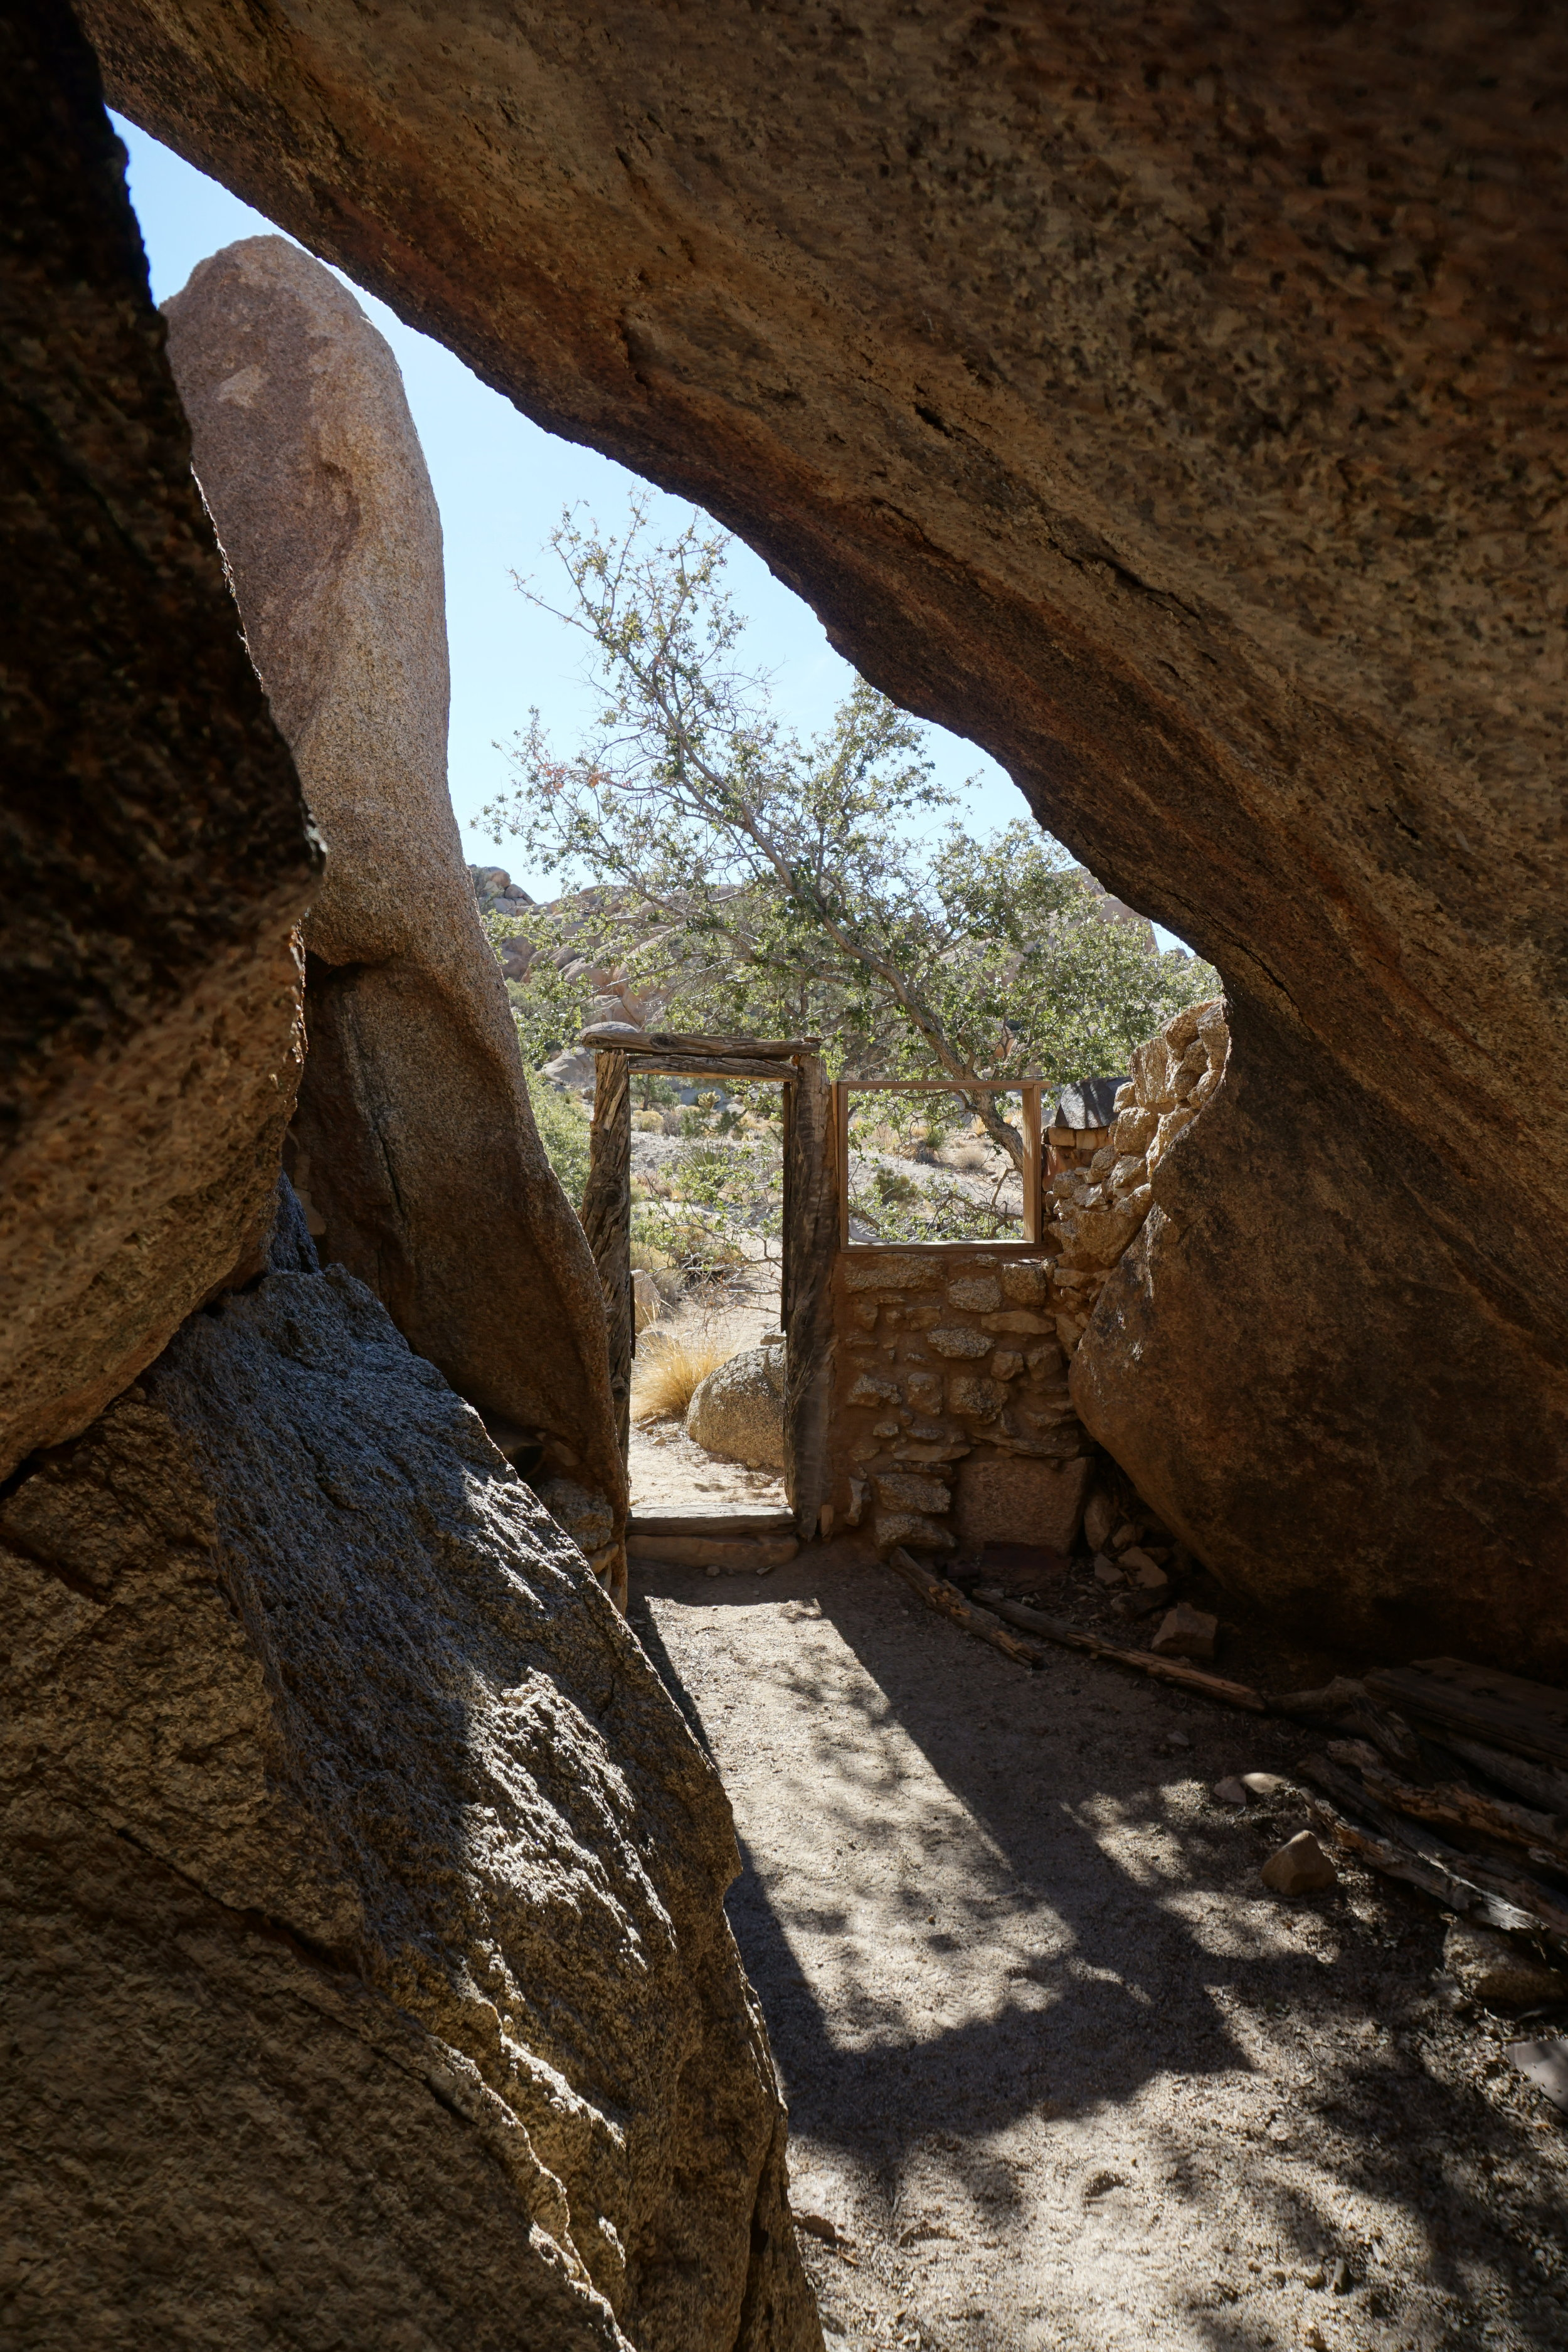 The door to the Eagle Cliff cabin is secreted between a tree and some rocks.